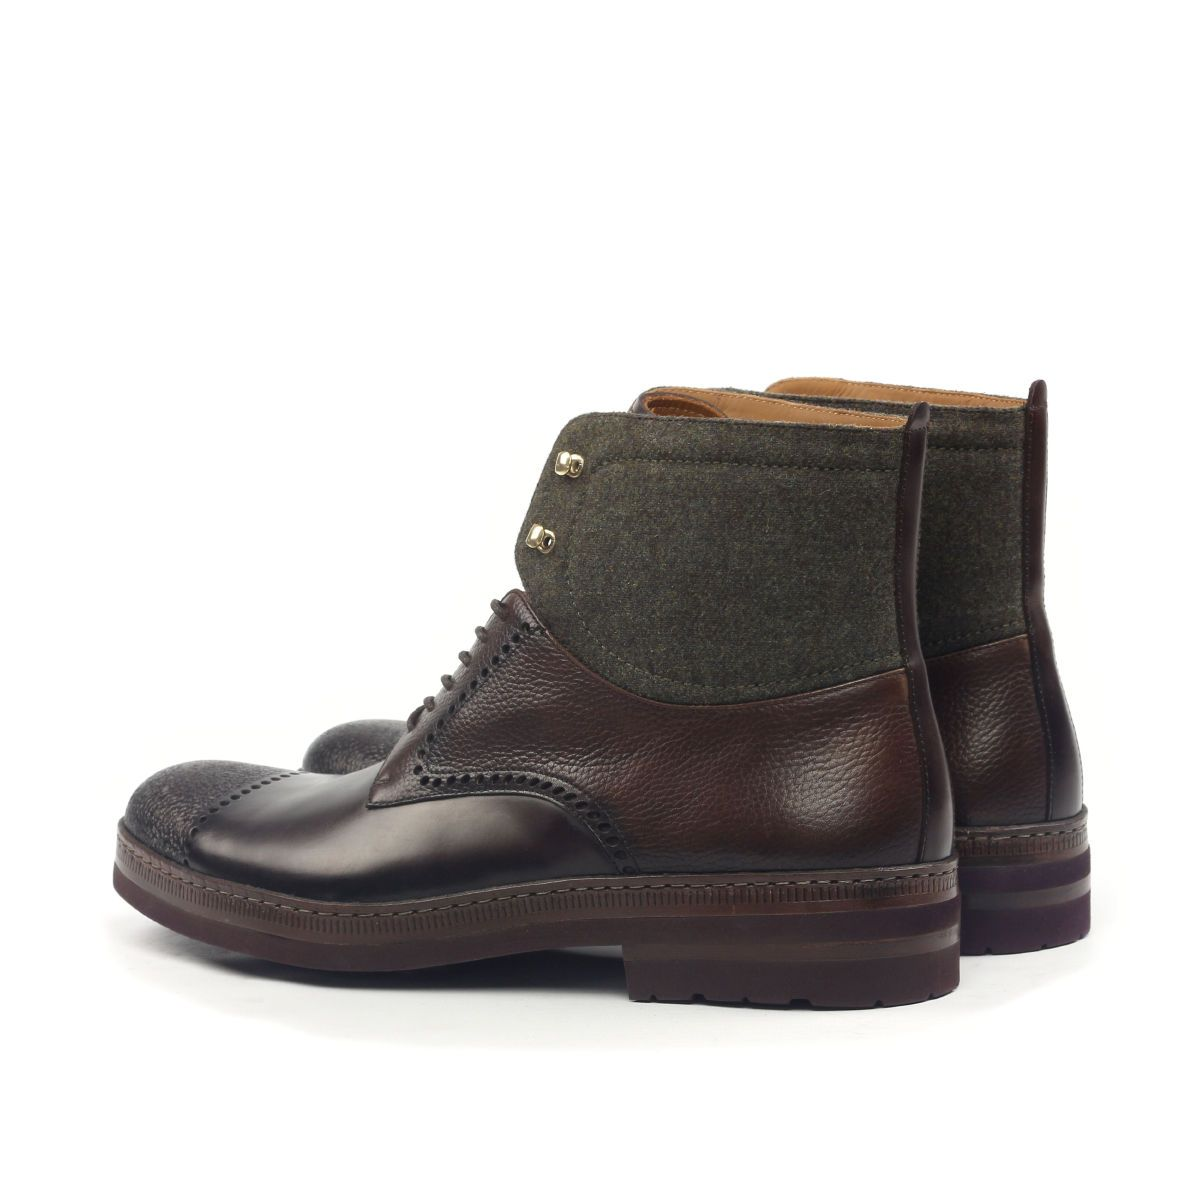 Omine Engraved Cap Toe Chukka Boot